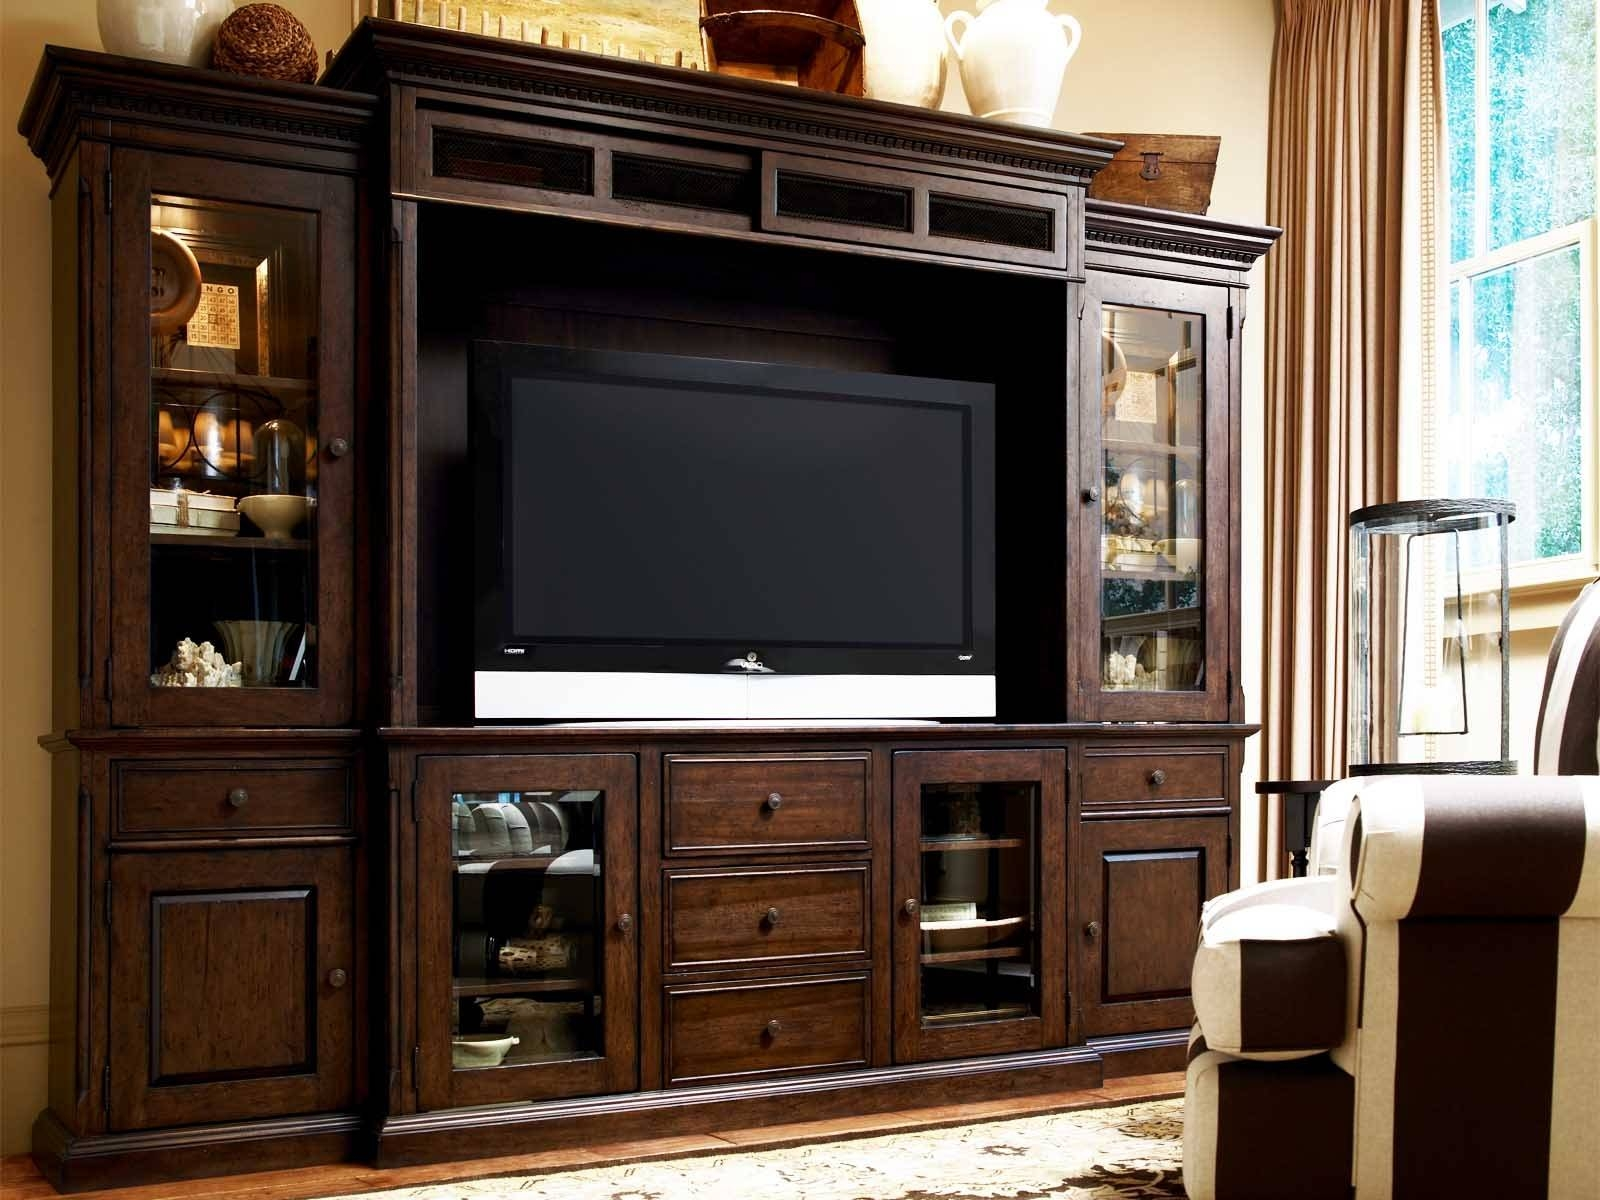 Wooden Tv Cabinets With Glass Doors | Cabinet Doors And File Cabinets inside Tv Cabinets With Glass Doors (Image 15 of 15)